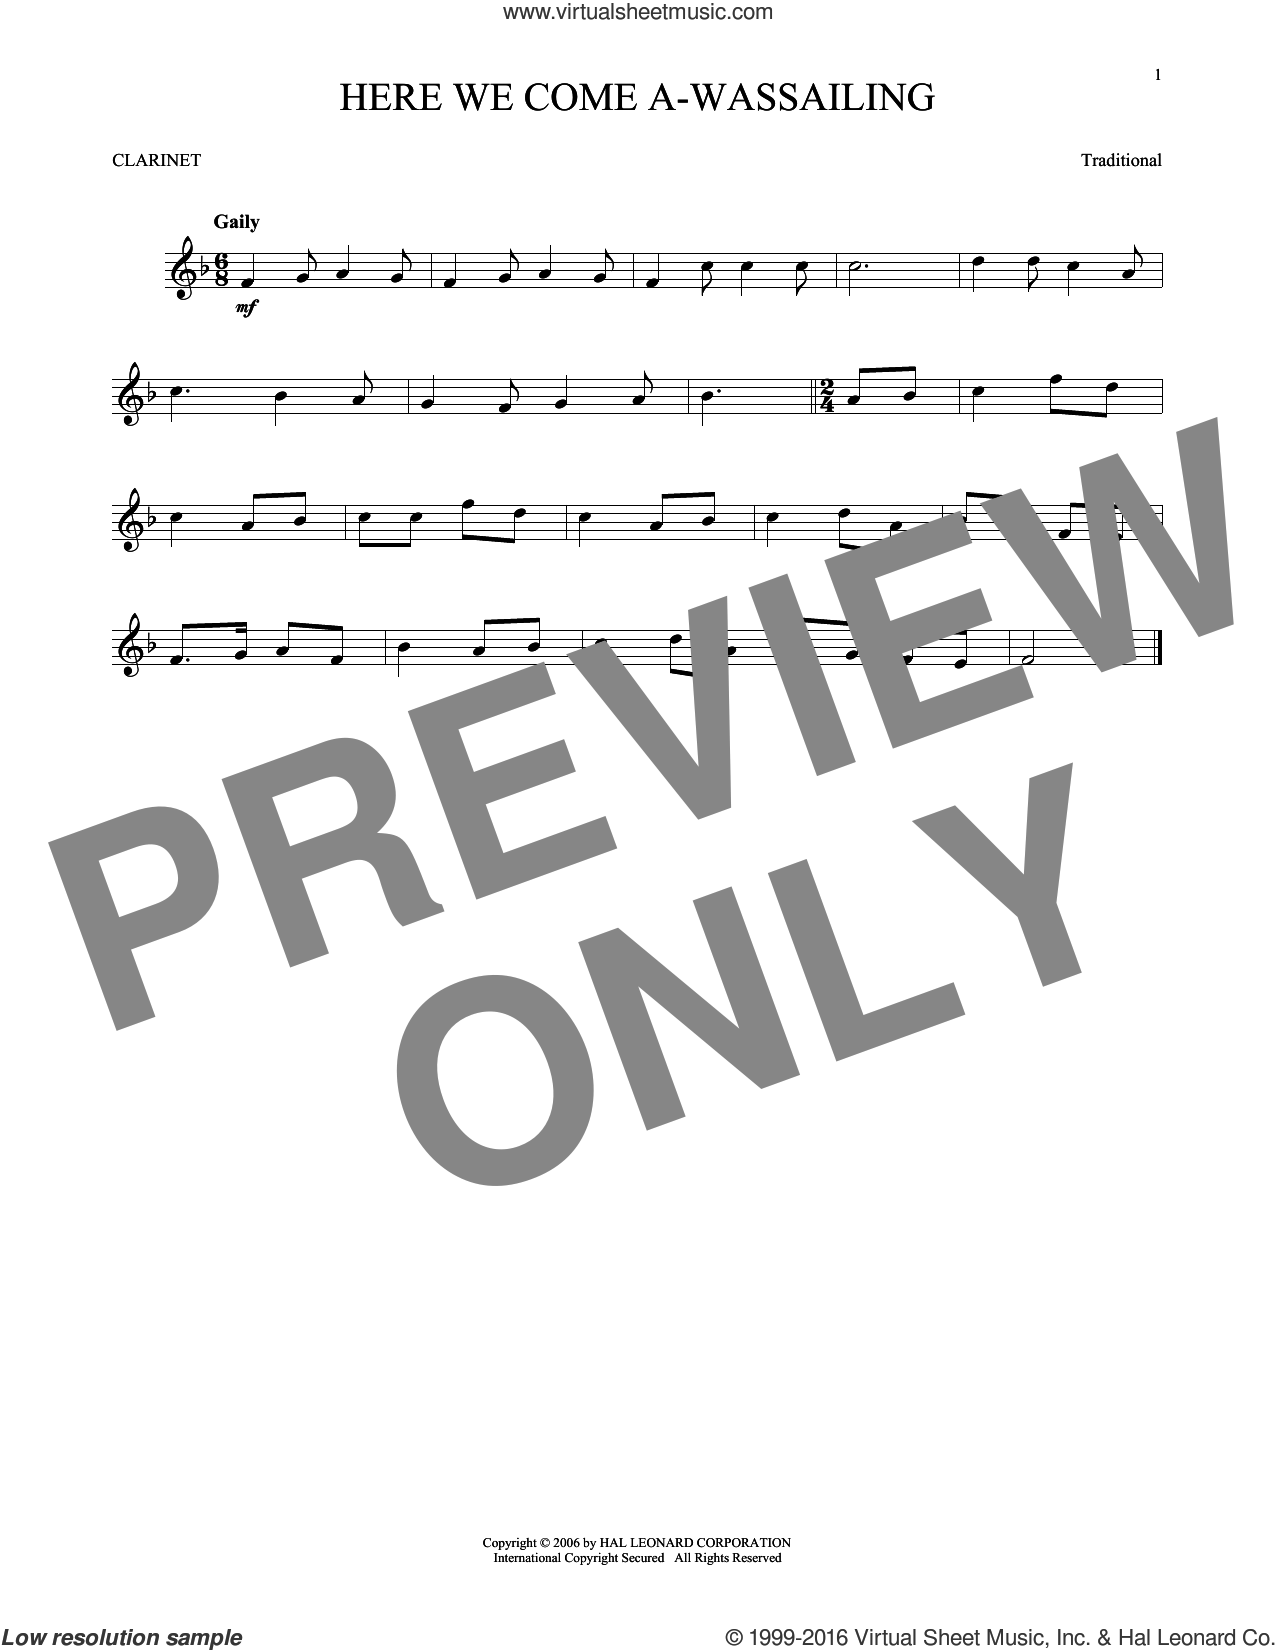 Here We Come A-Wassailing sheet music for clarinet solo, intermediate skill level